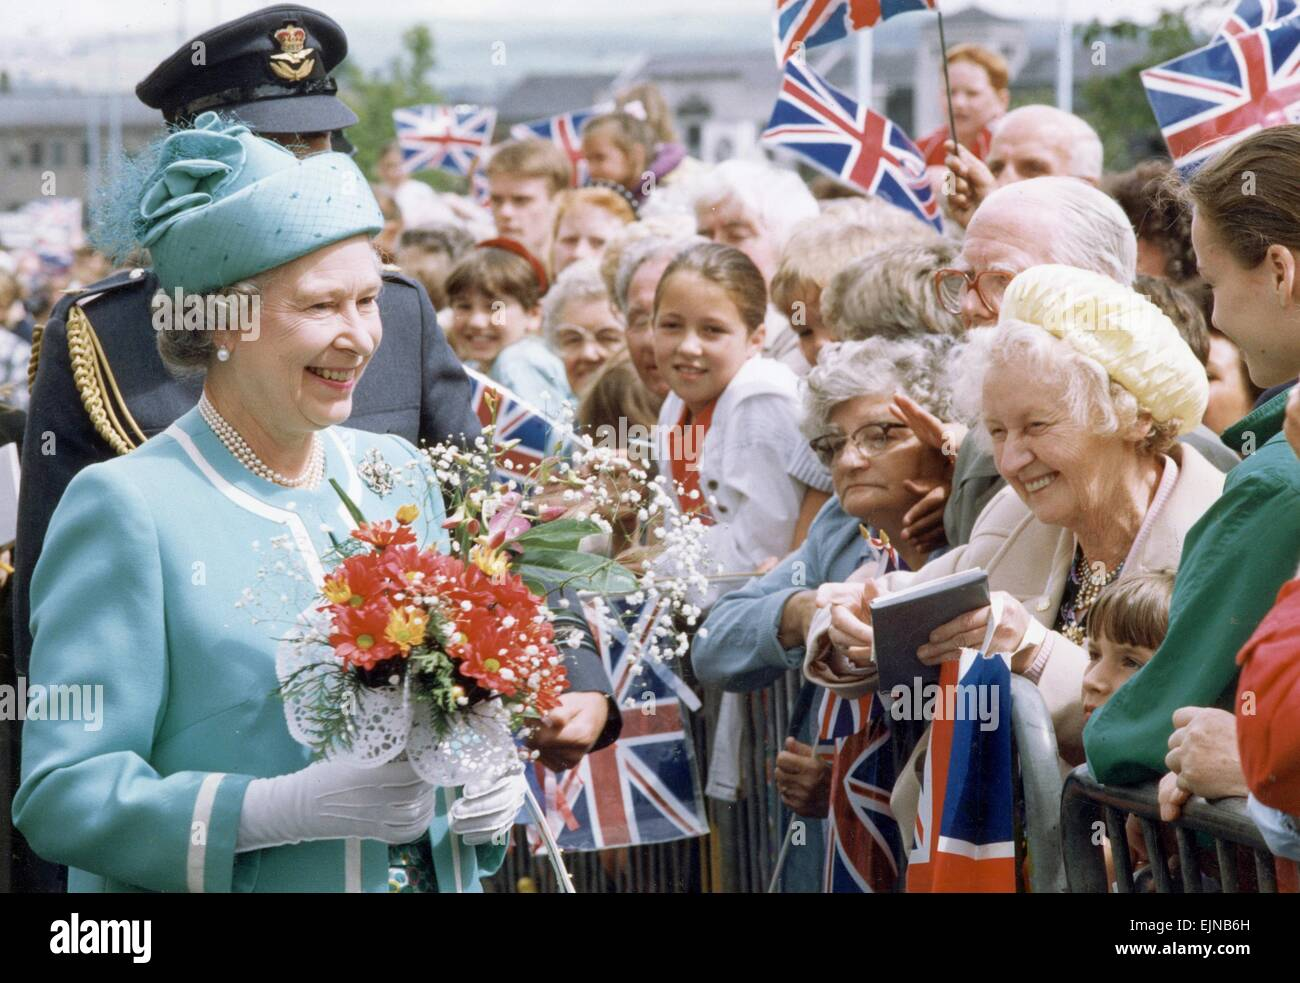 The Queen visits Manchester. 17th July 1992. - Stock Image